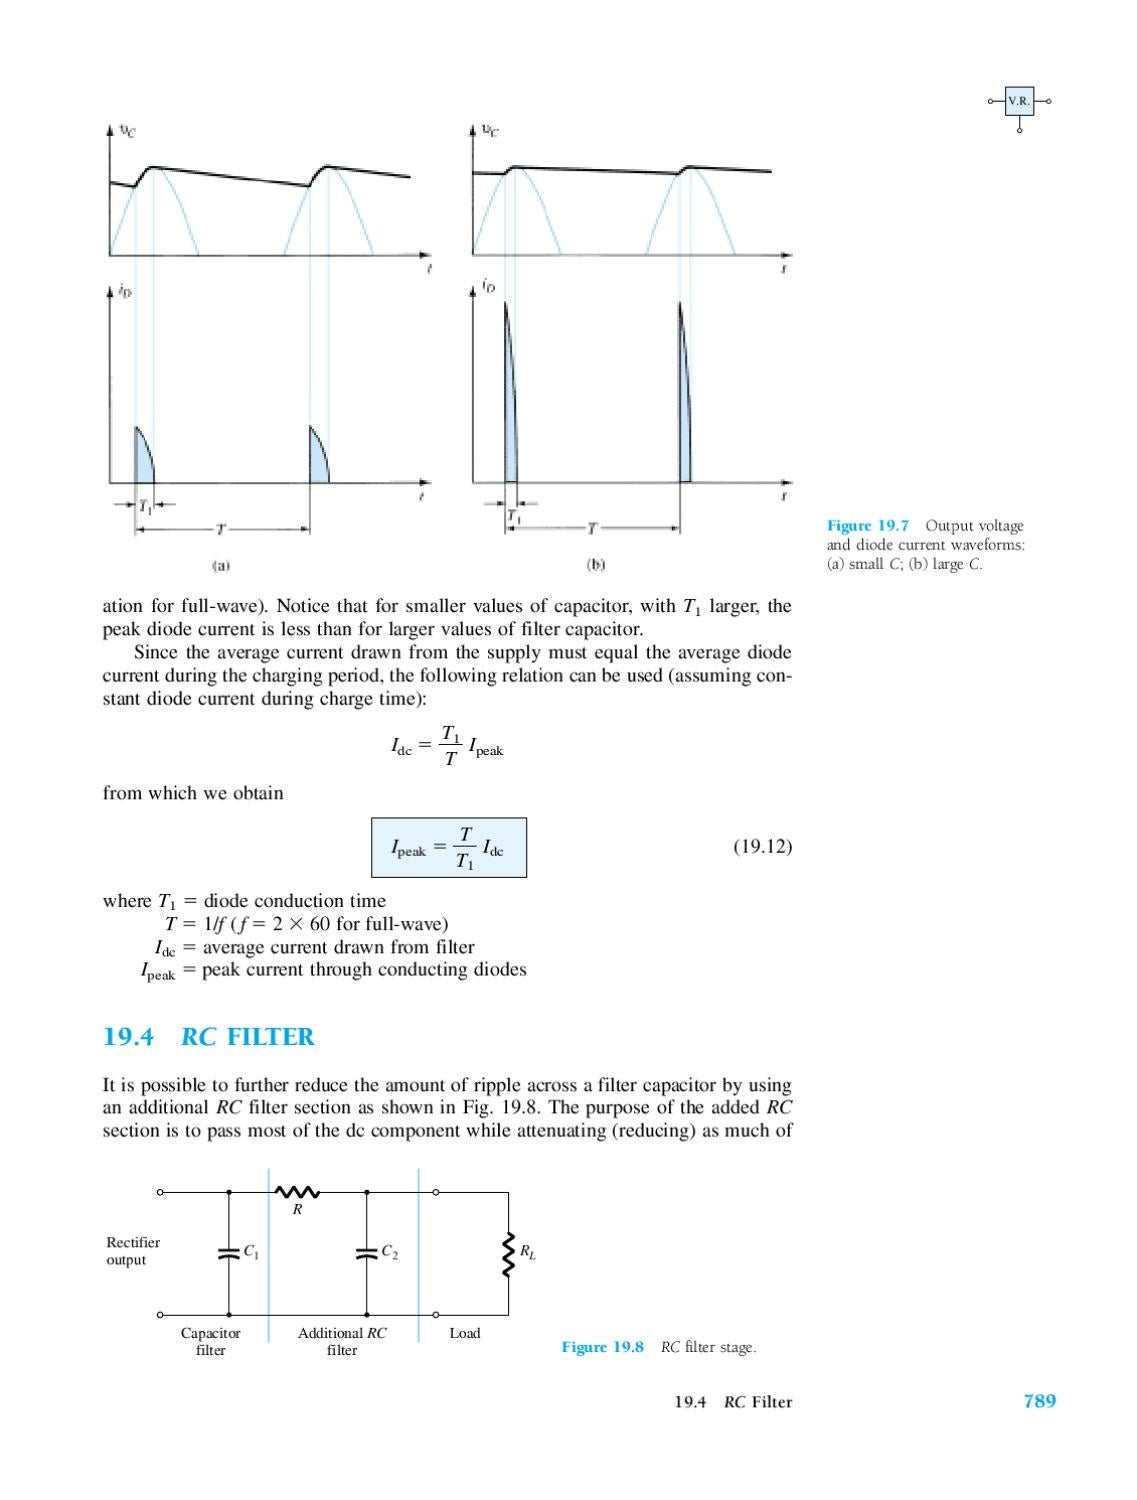 Electronics By Rolison Llanos Issuu The Full Wave Rectifier And Averaging Filter